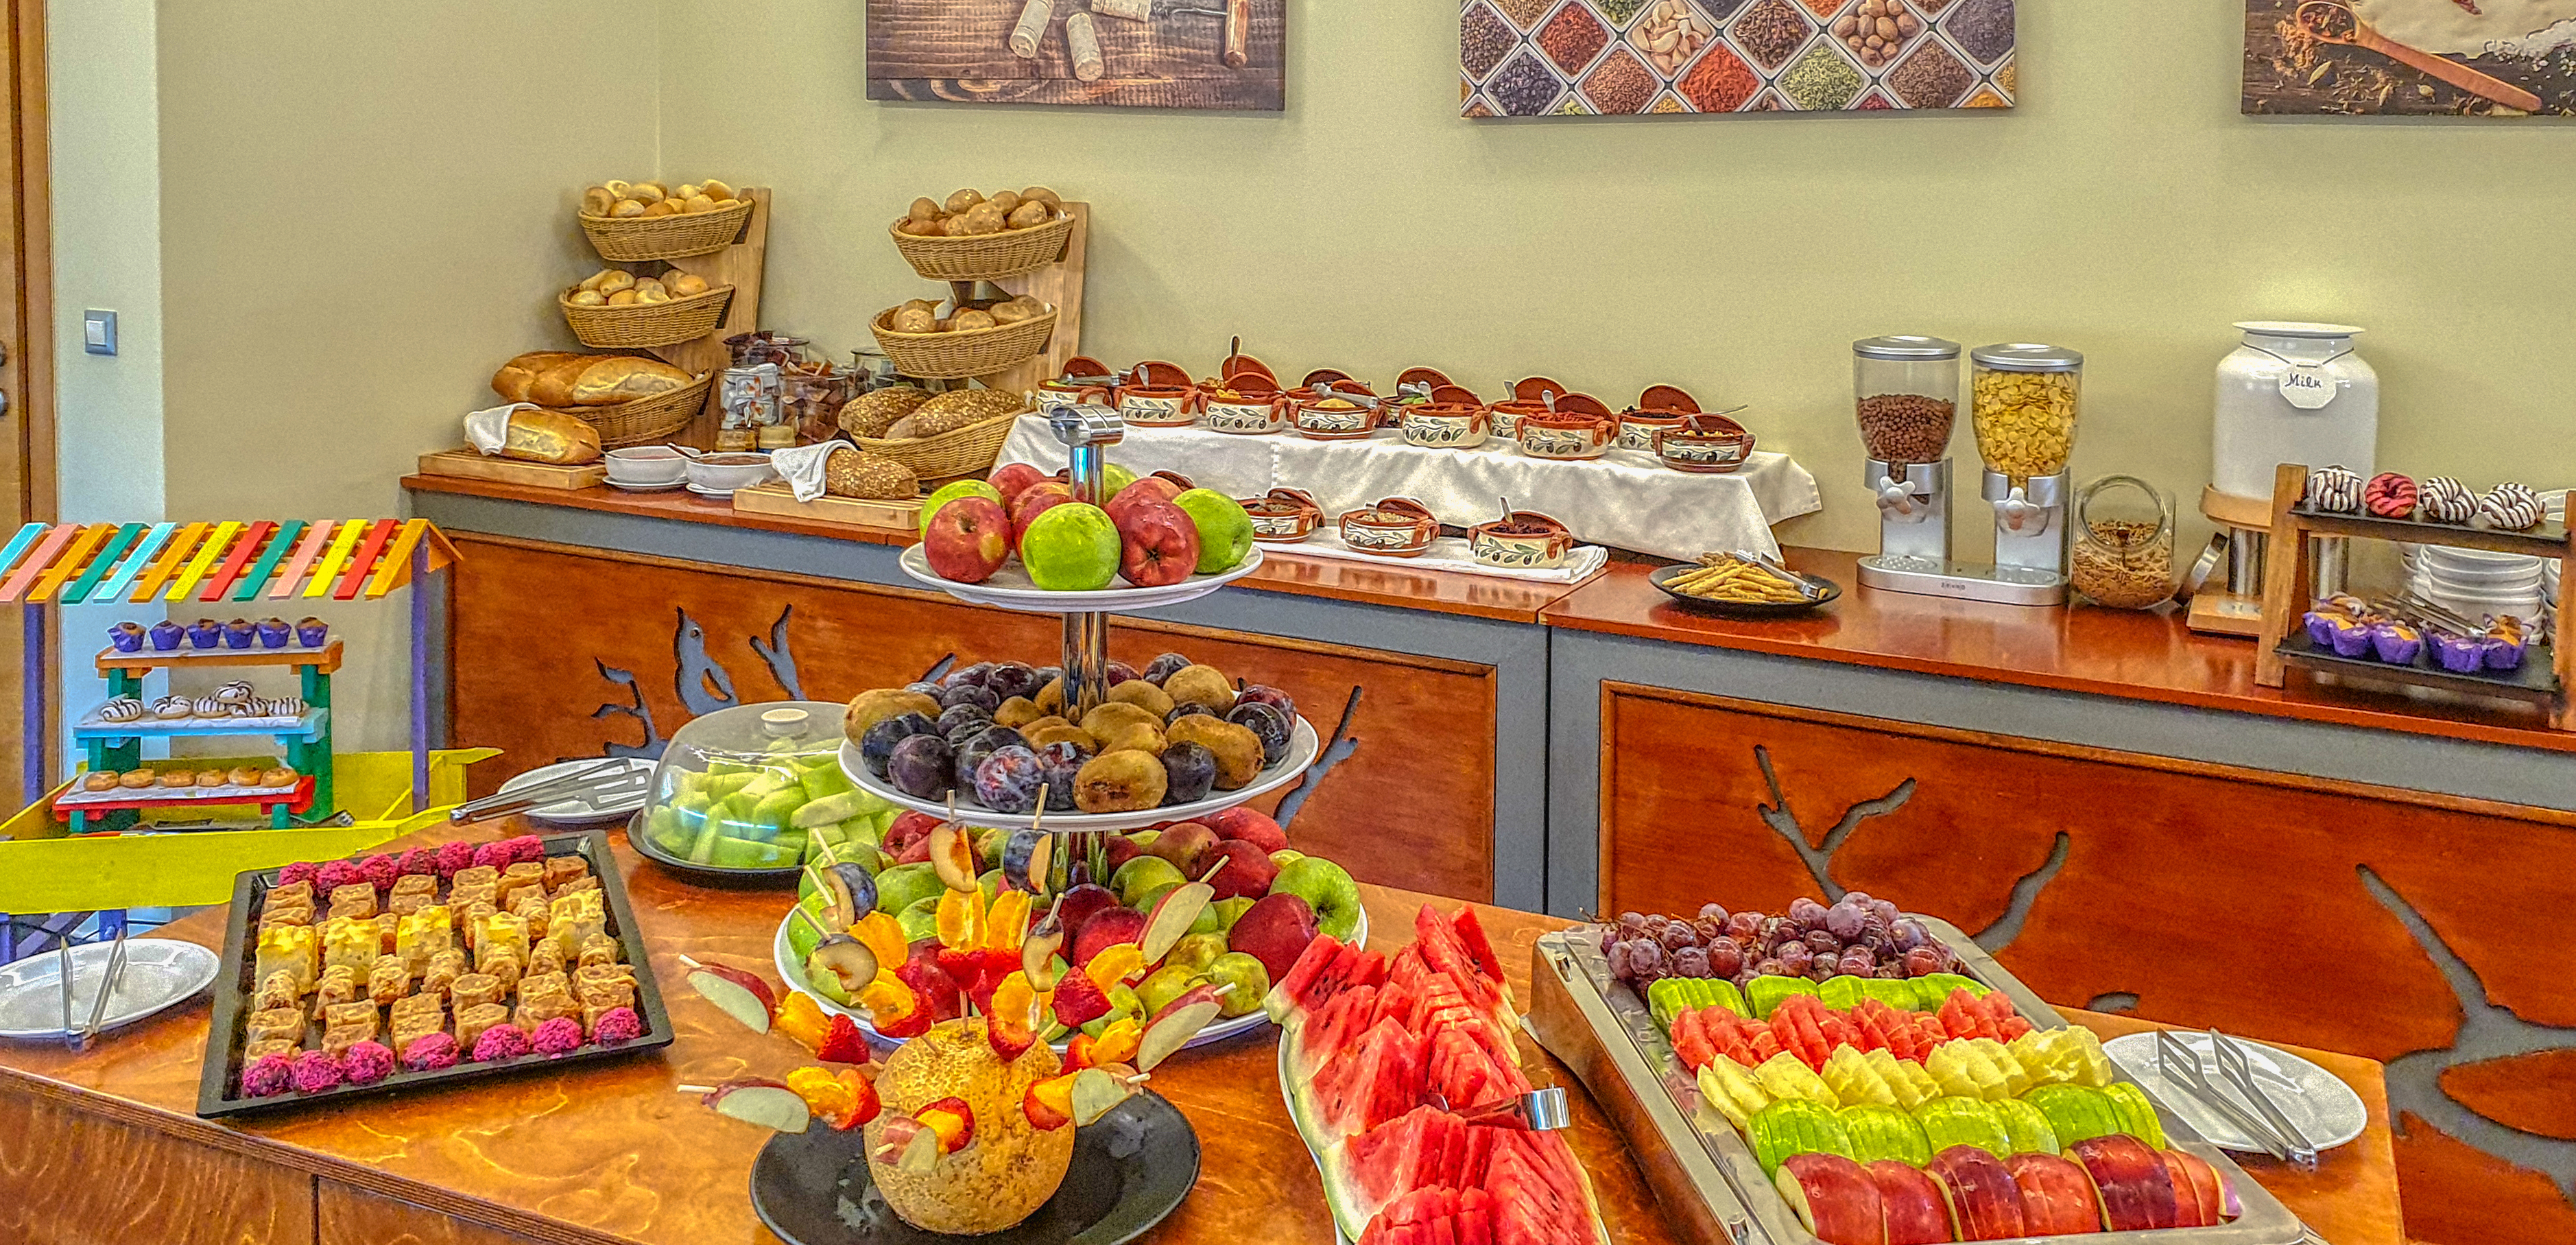 BLUE STAR ISIDA HOTEL BREAKFAST BUFFET-E